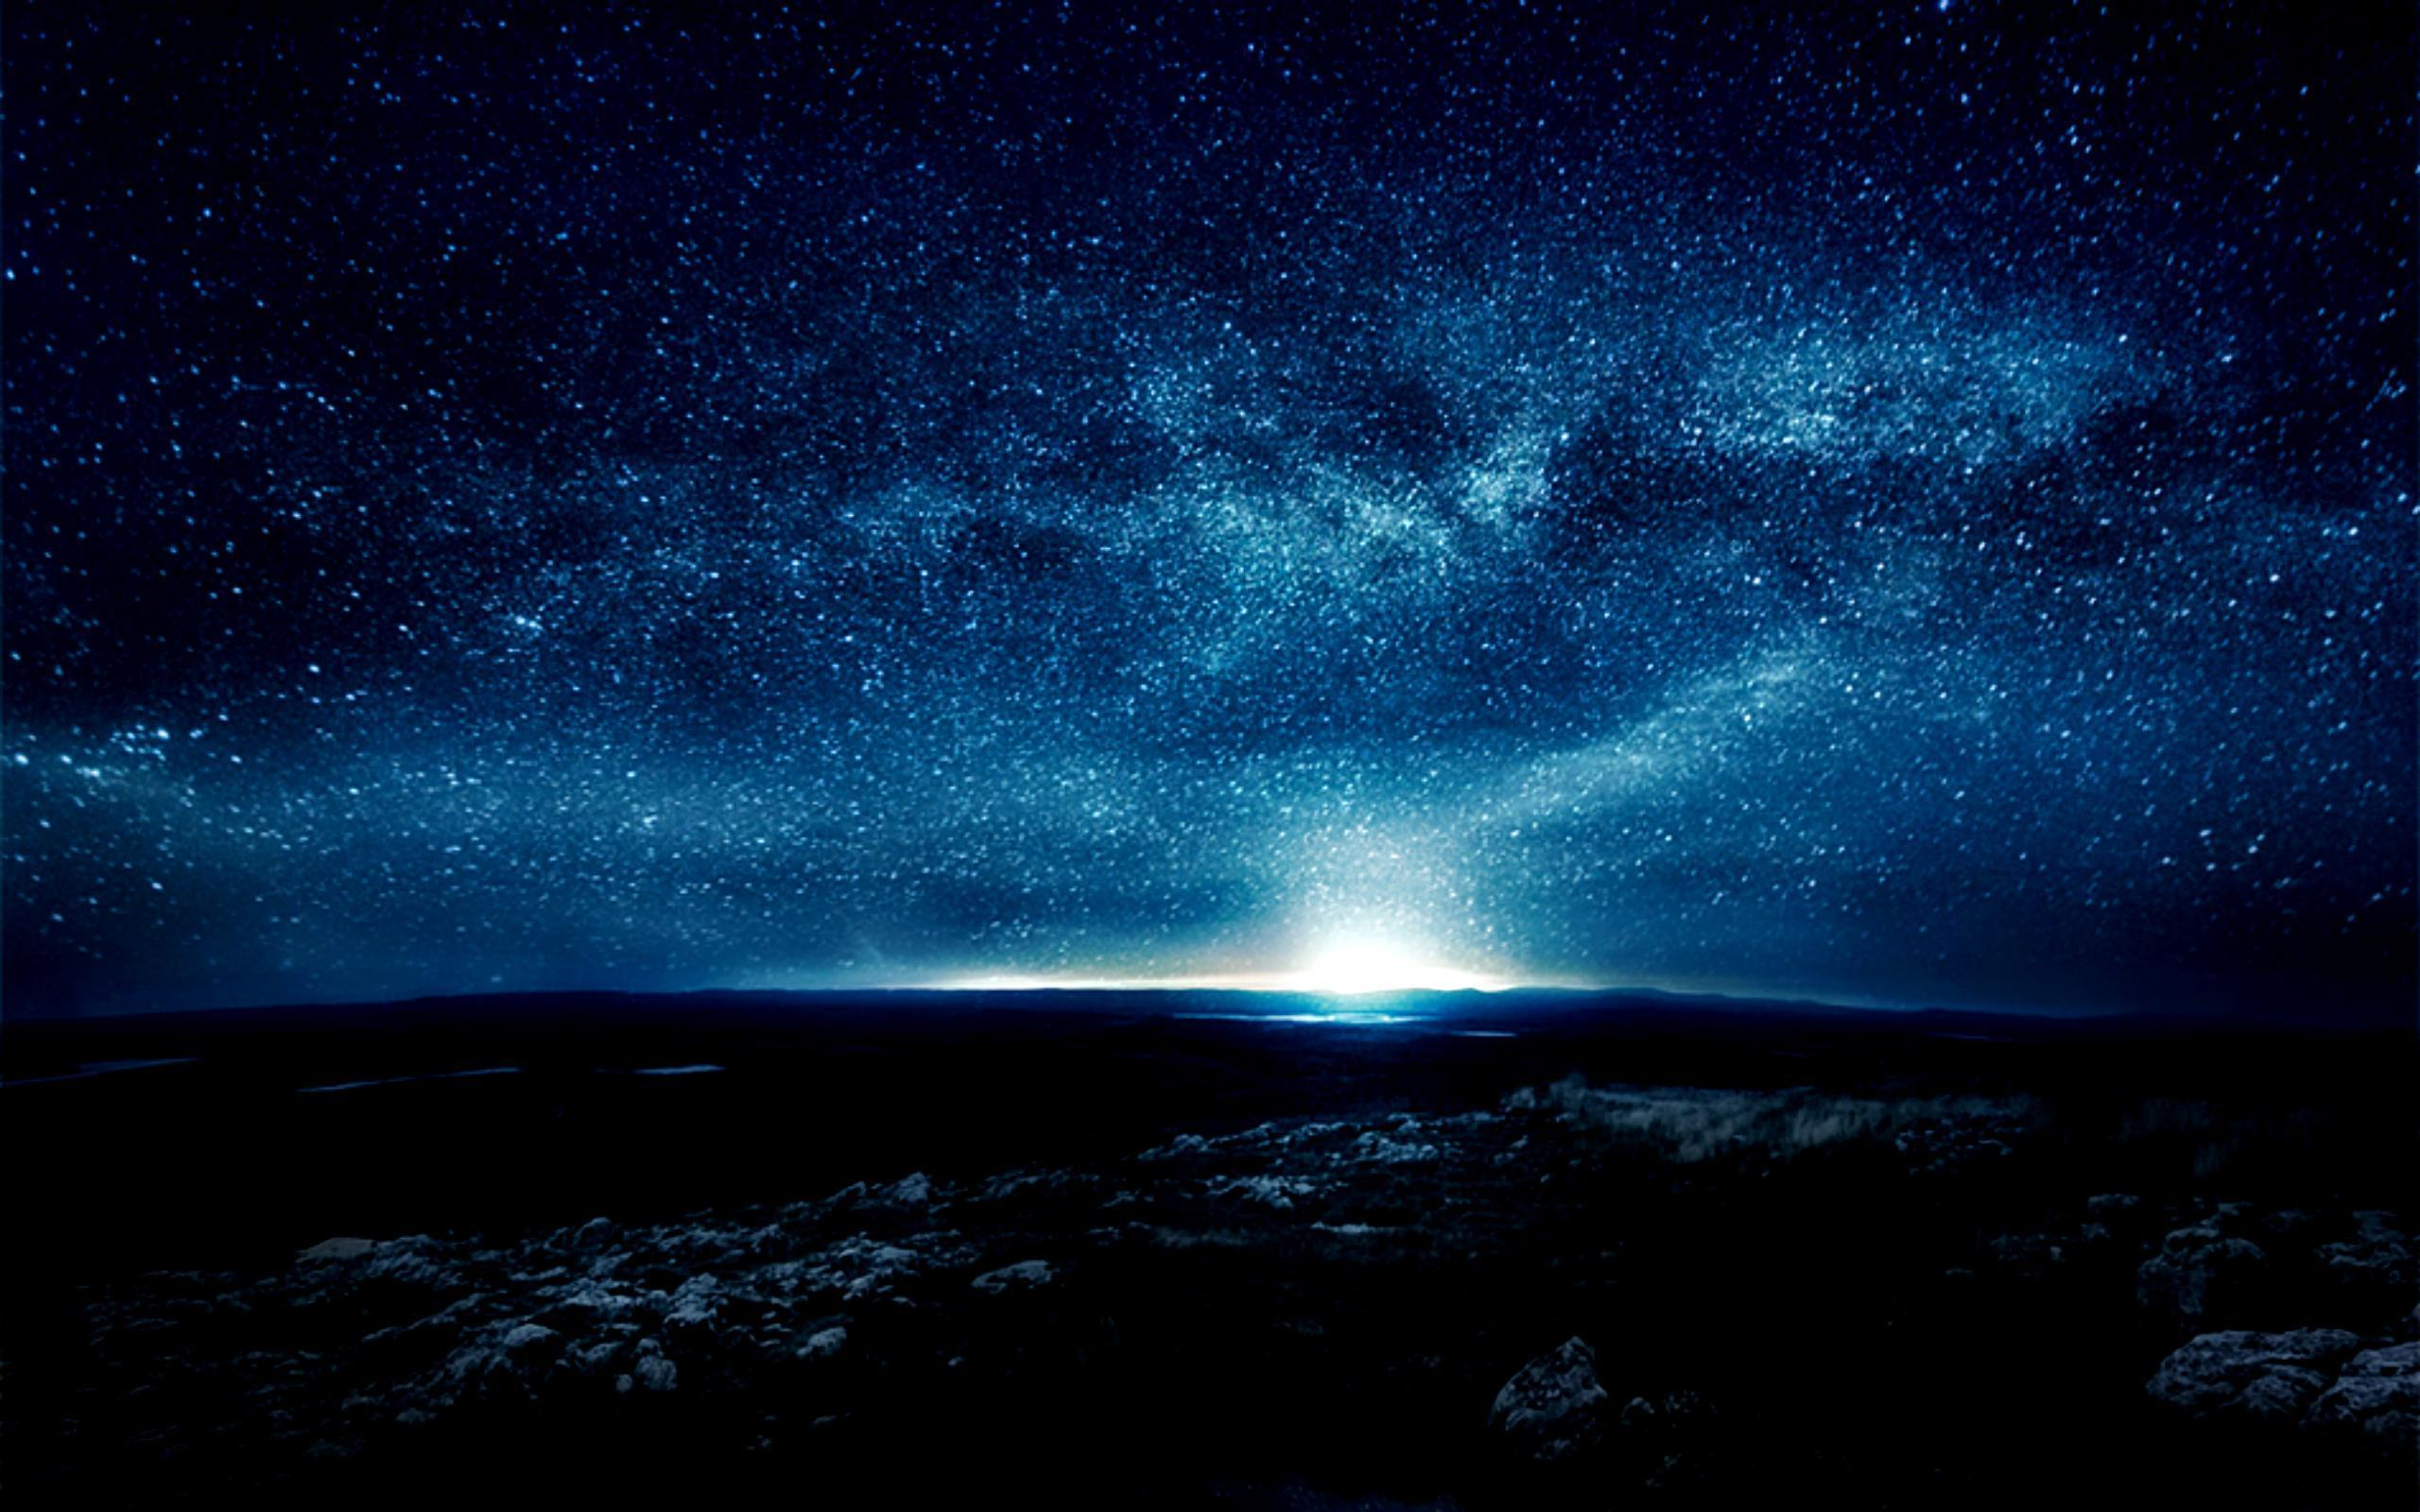 Simple Wallpaper High Resolution Night Sky - gCqWjfd  Pic_337819.jpg